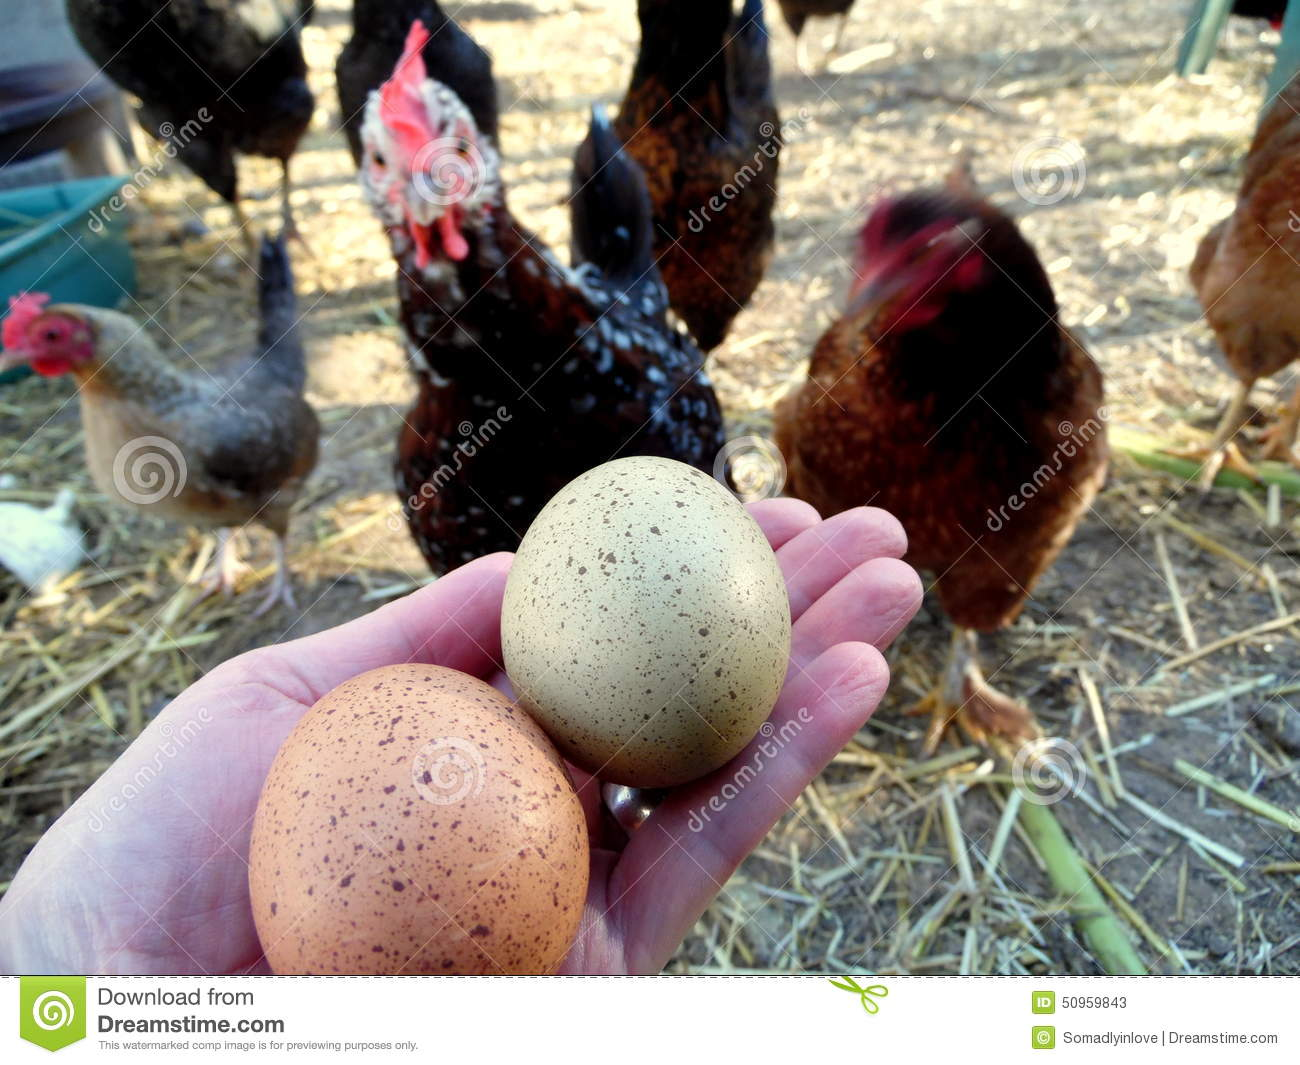 Photograph Of Speckled Eggs And Chickens. Stock Photo - Image ...